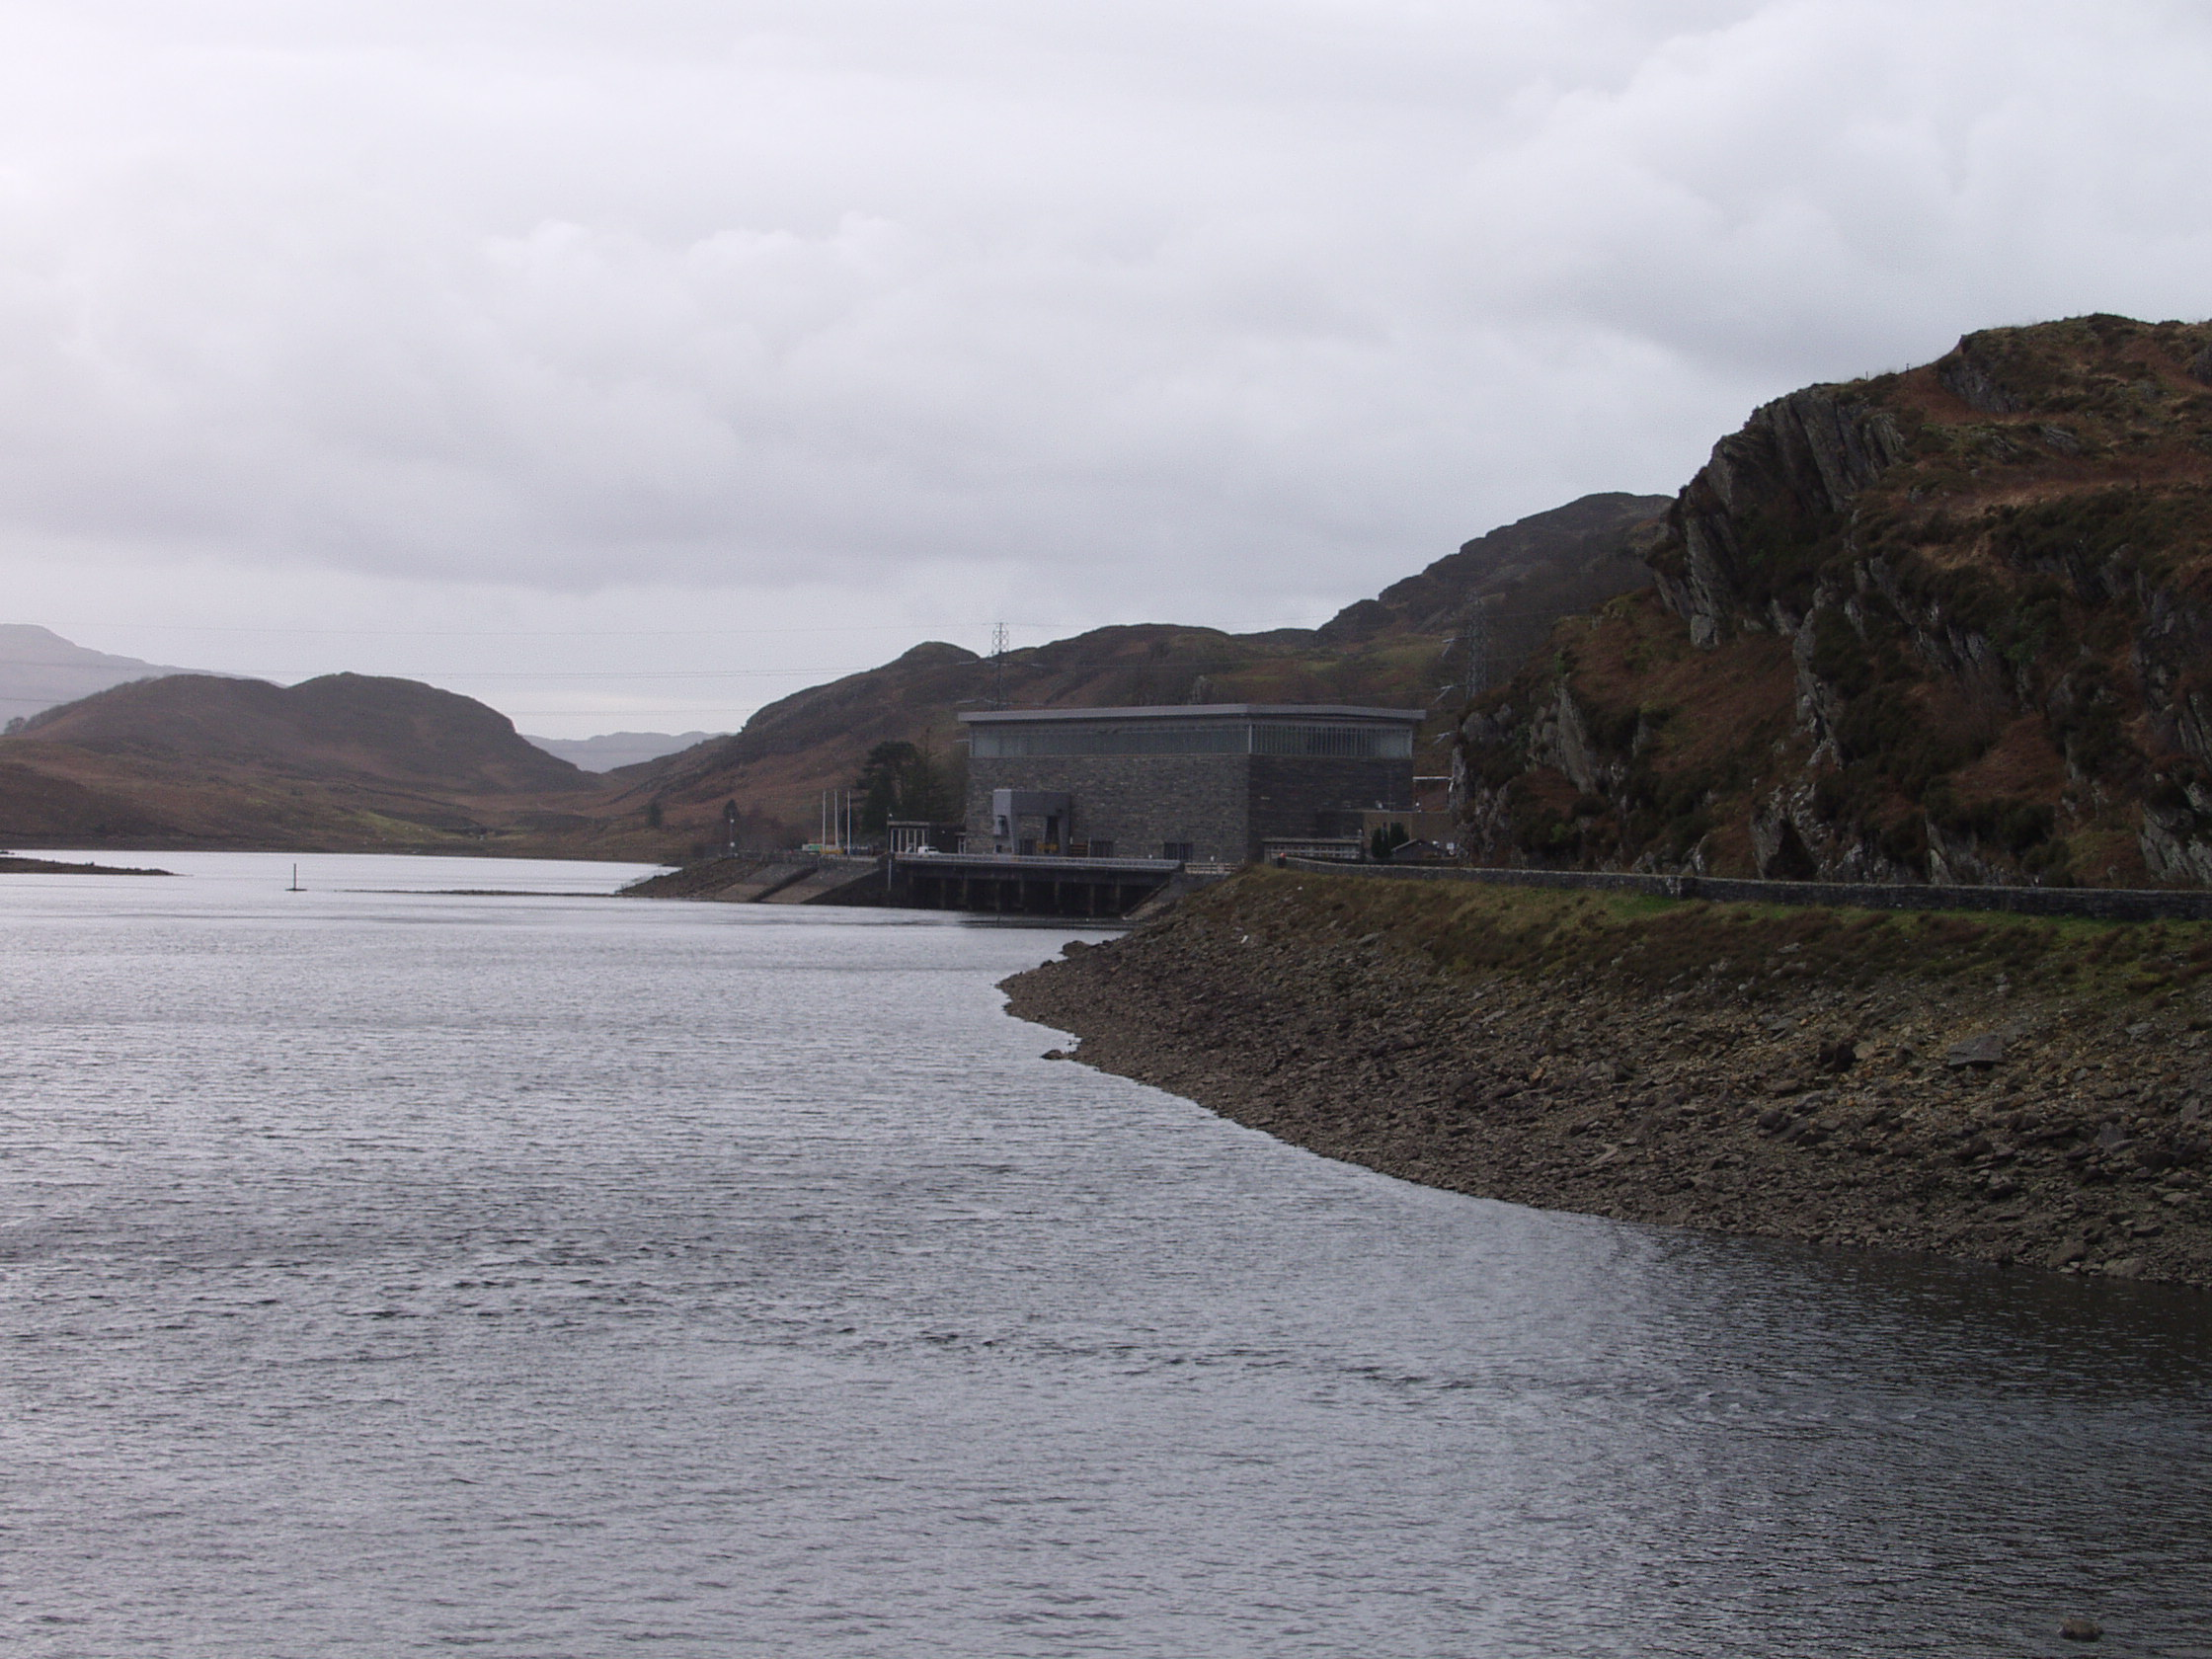 View of the Ffestiniog hydro station from the main road